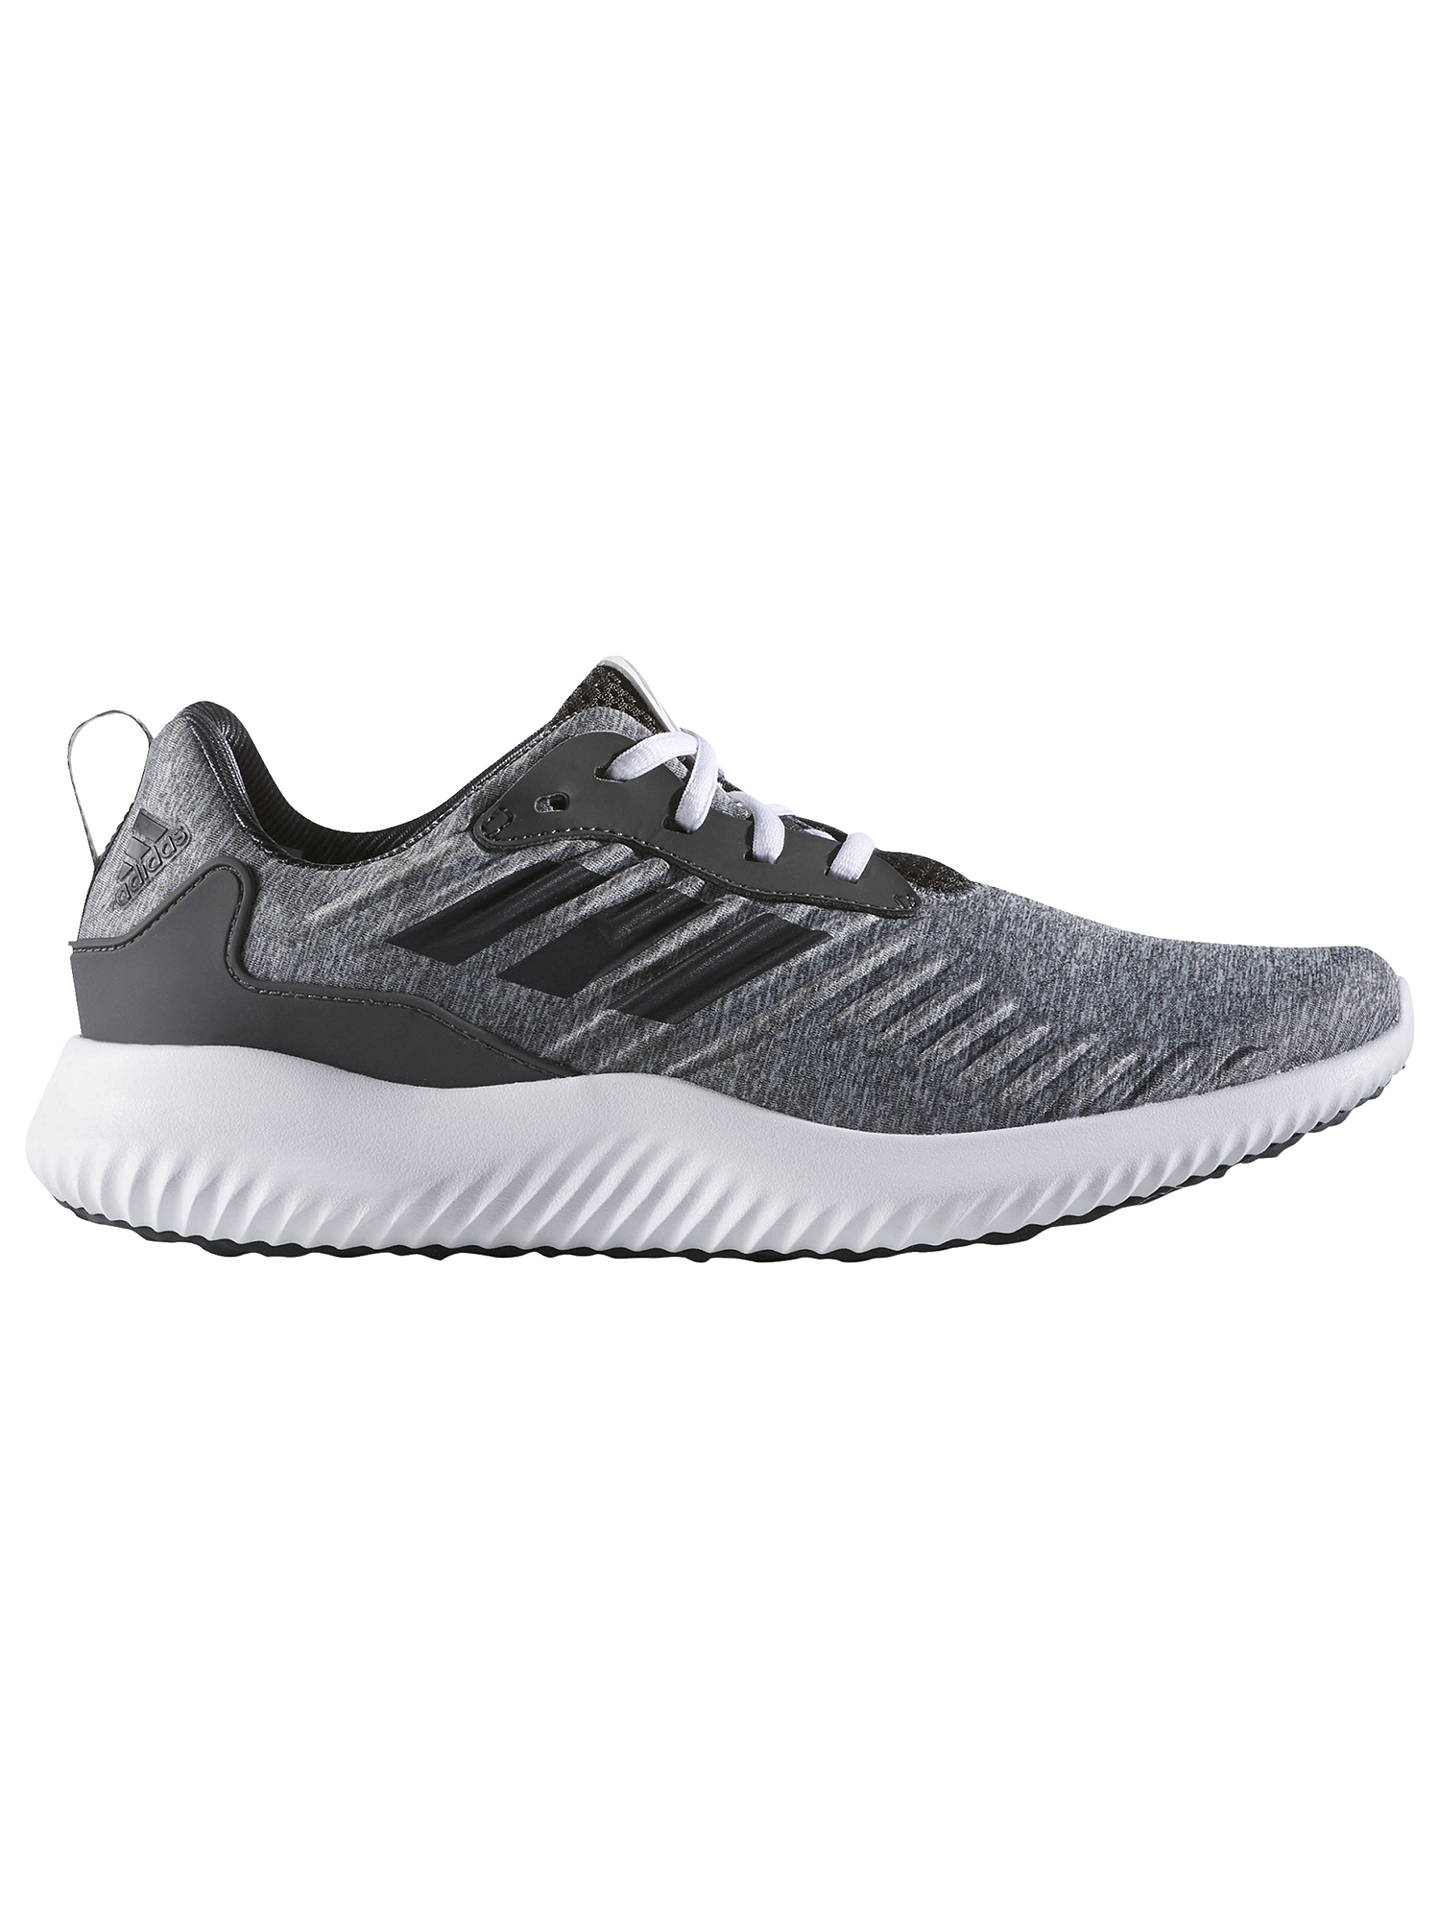 4f8e6fa688964 Buy Adidas Alphabounce RC Men s Running Shoes